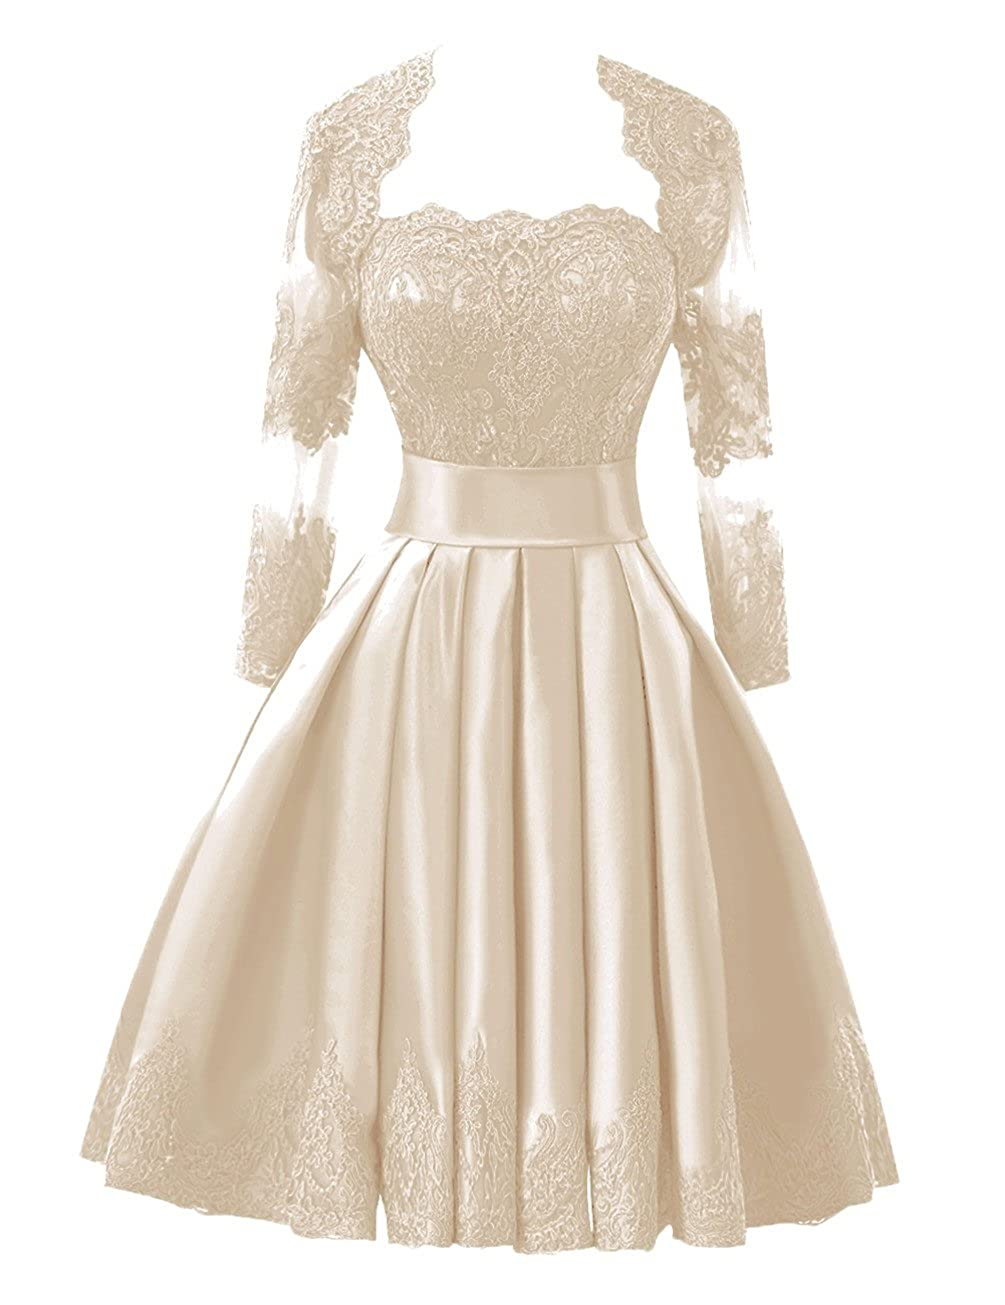 27f9602ad03f Bridal Women's Lace Short Prom Homecoming Dresses with Long Sleeve Jacket  Champagne Bess ncwcdu1830-Prom & Homecoming